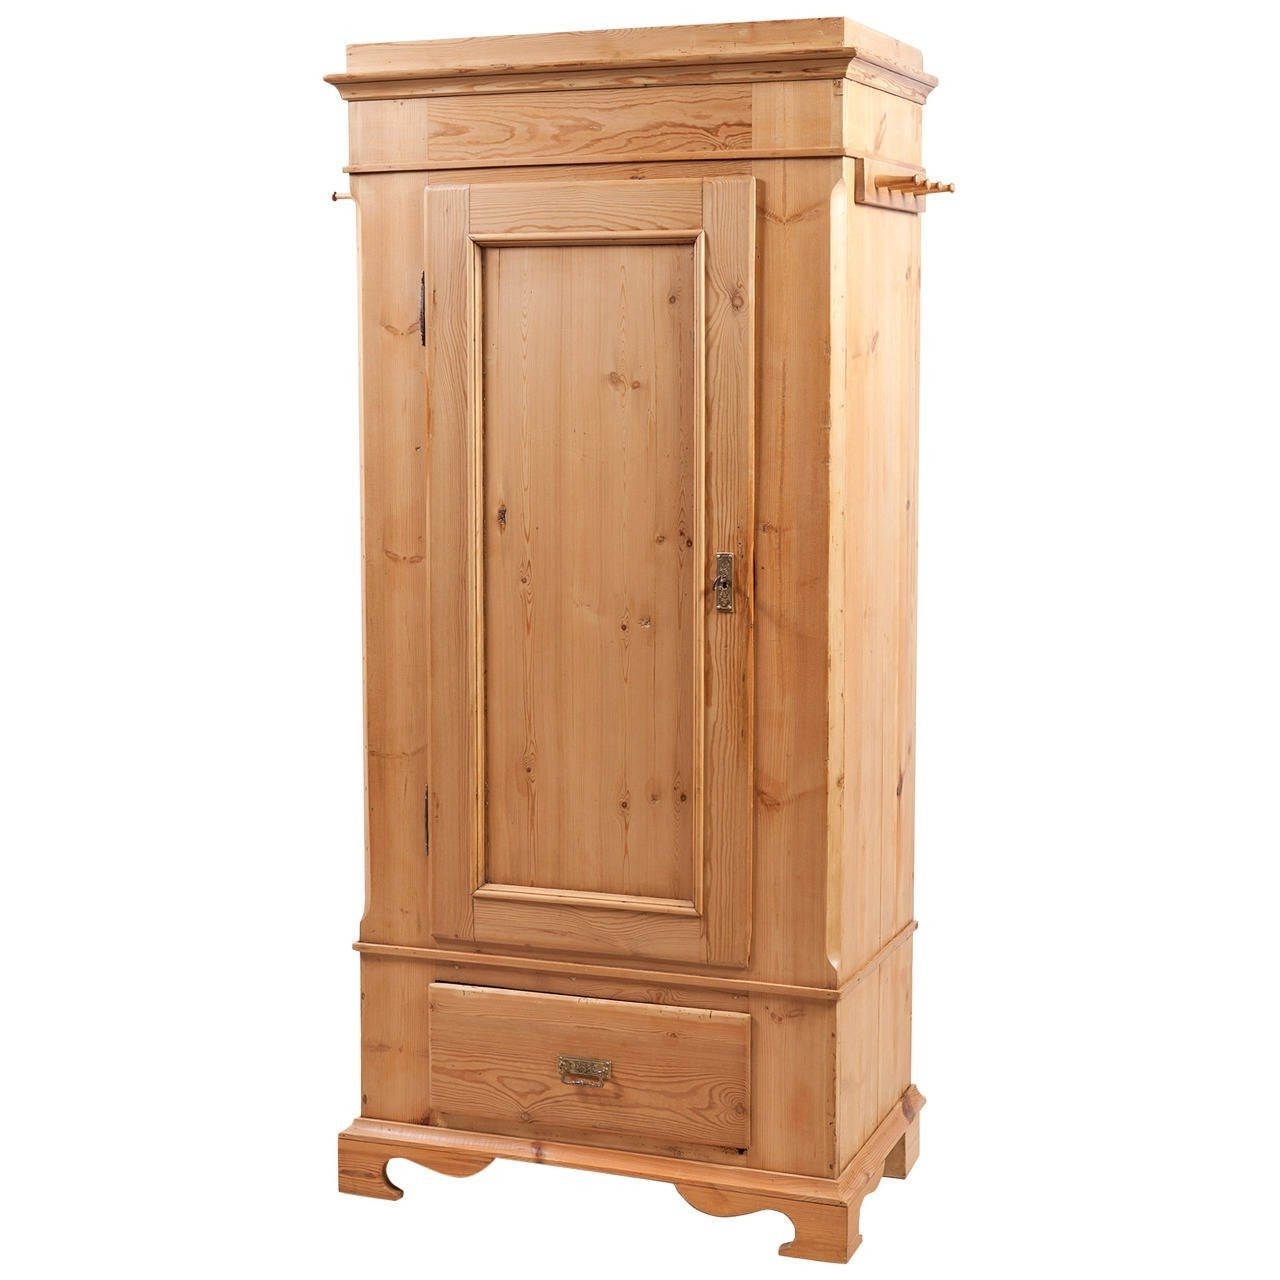 Single Pine Wardrobes With Drawers Inside Famous Single Door Danish Wardrobe Armoire In Pine, Circa 1845 At 1stdibs (View 8 of 15)